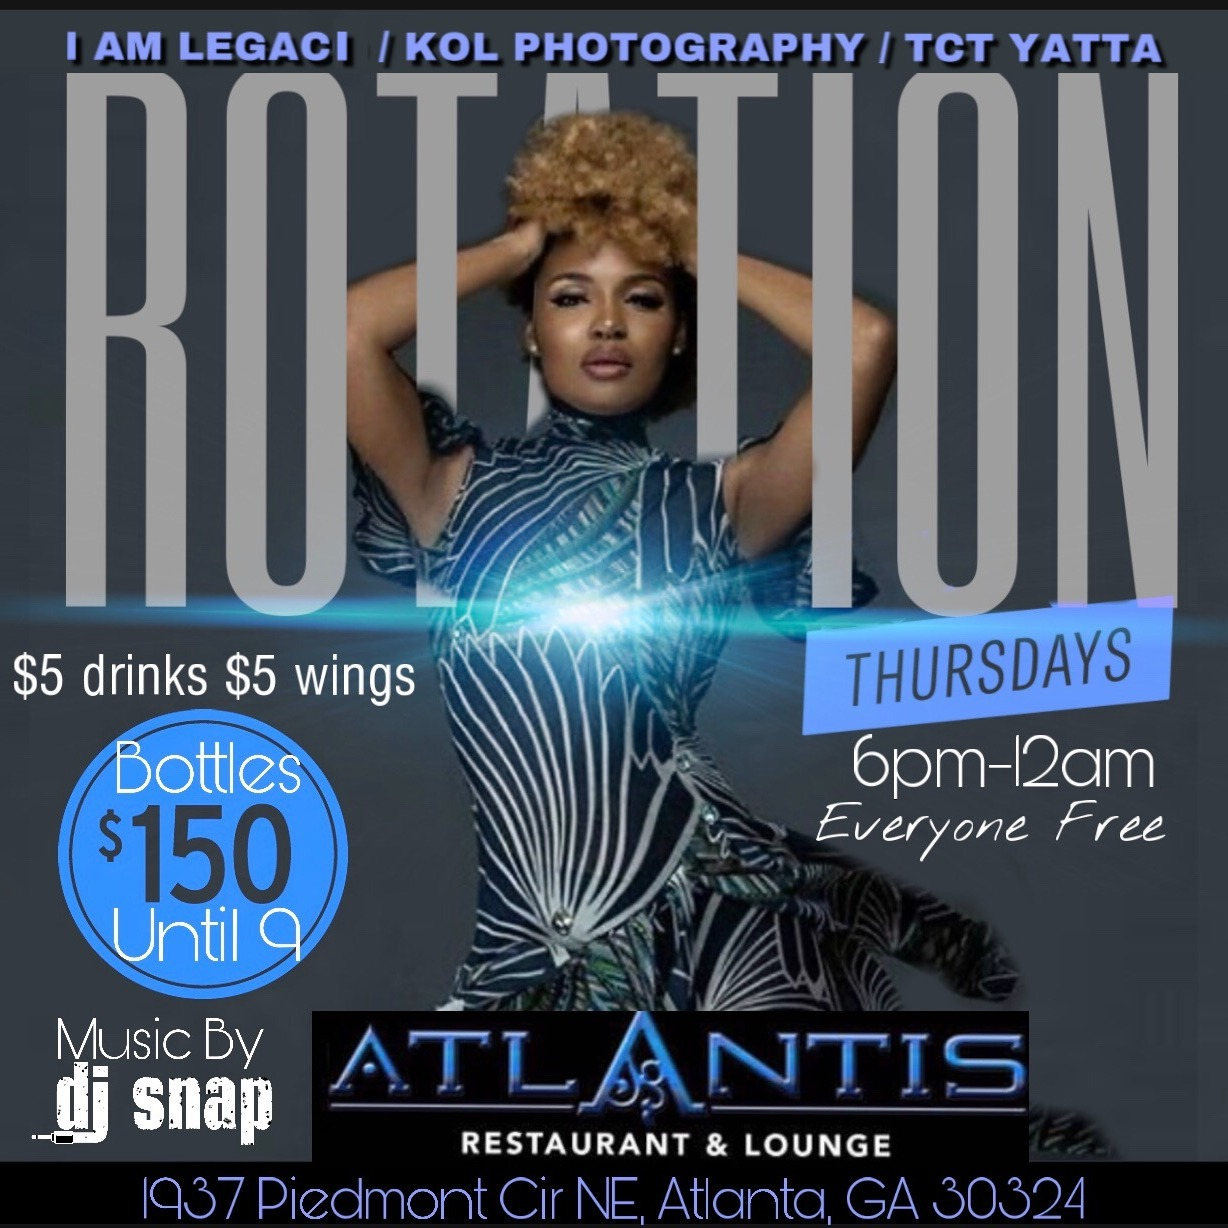 ROTATION THURSDAYS After-Work at ATLANTIS Everyone FREE with RSVP